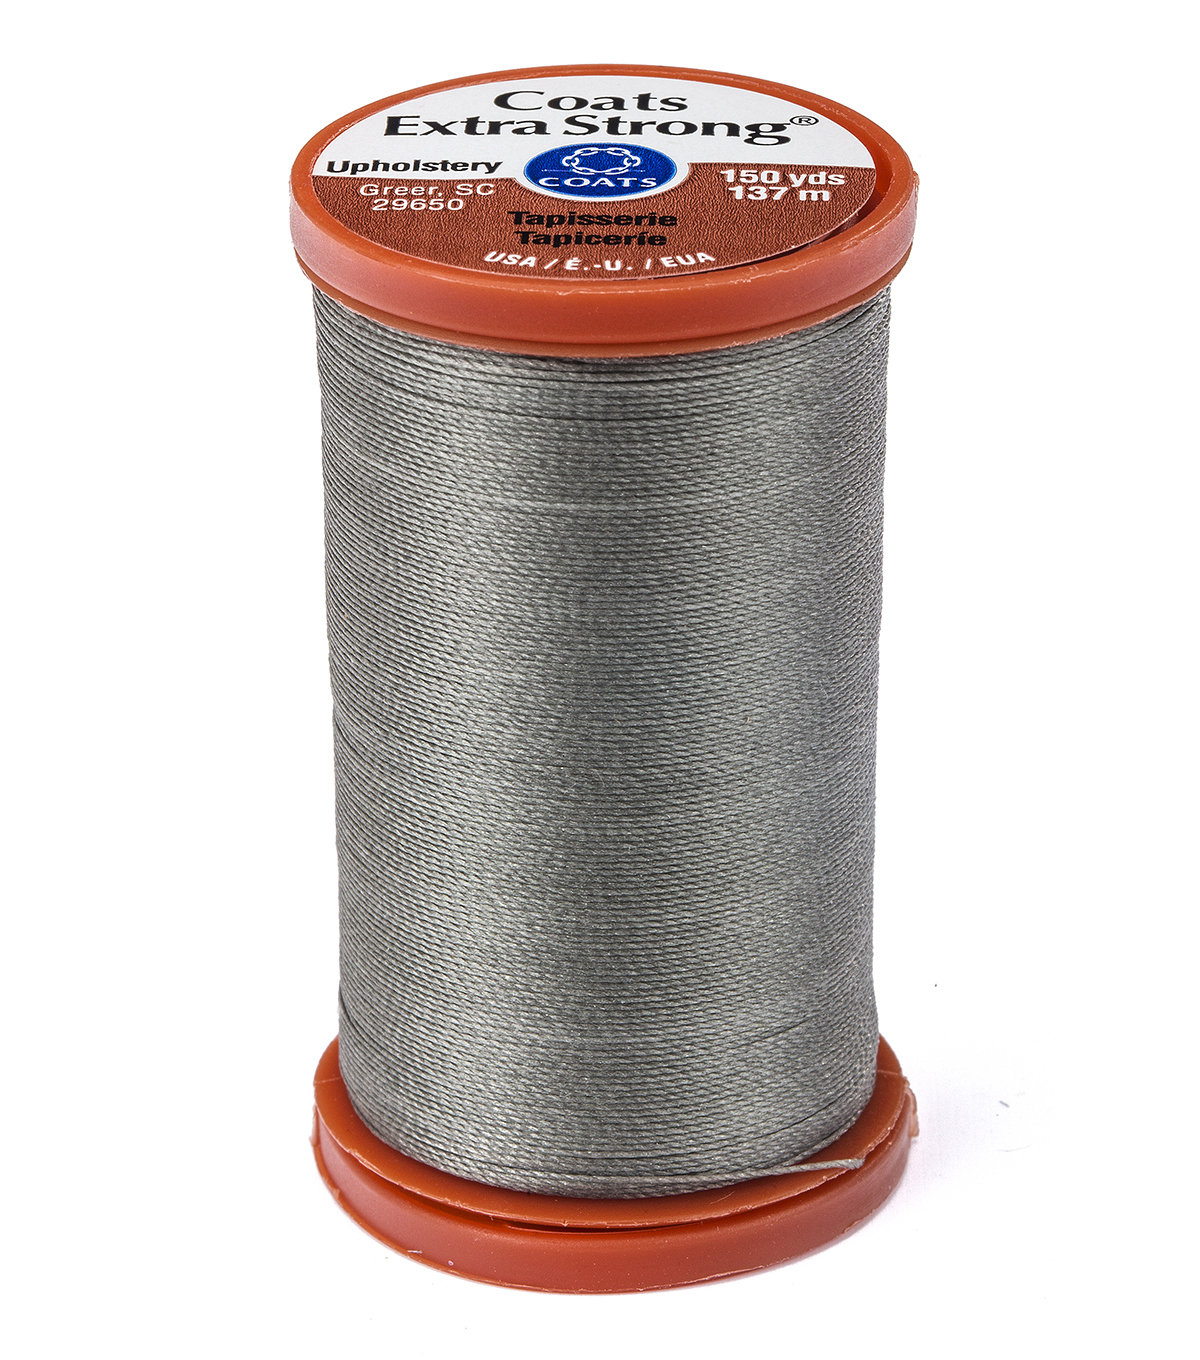 Coats & Clark Extra Strong & Upholstery Thread 150 yd , Cocoon